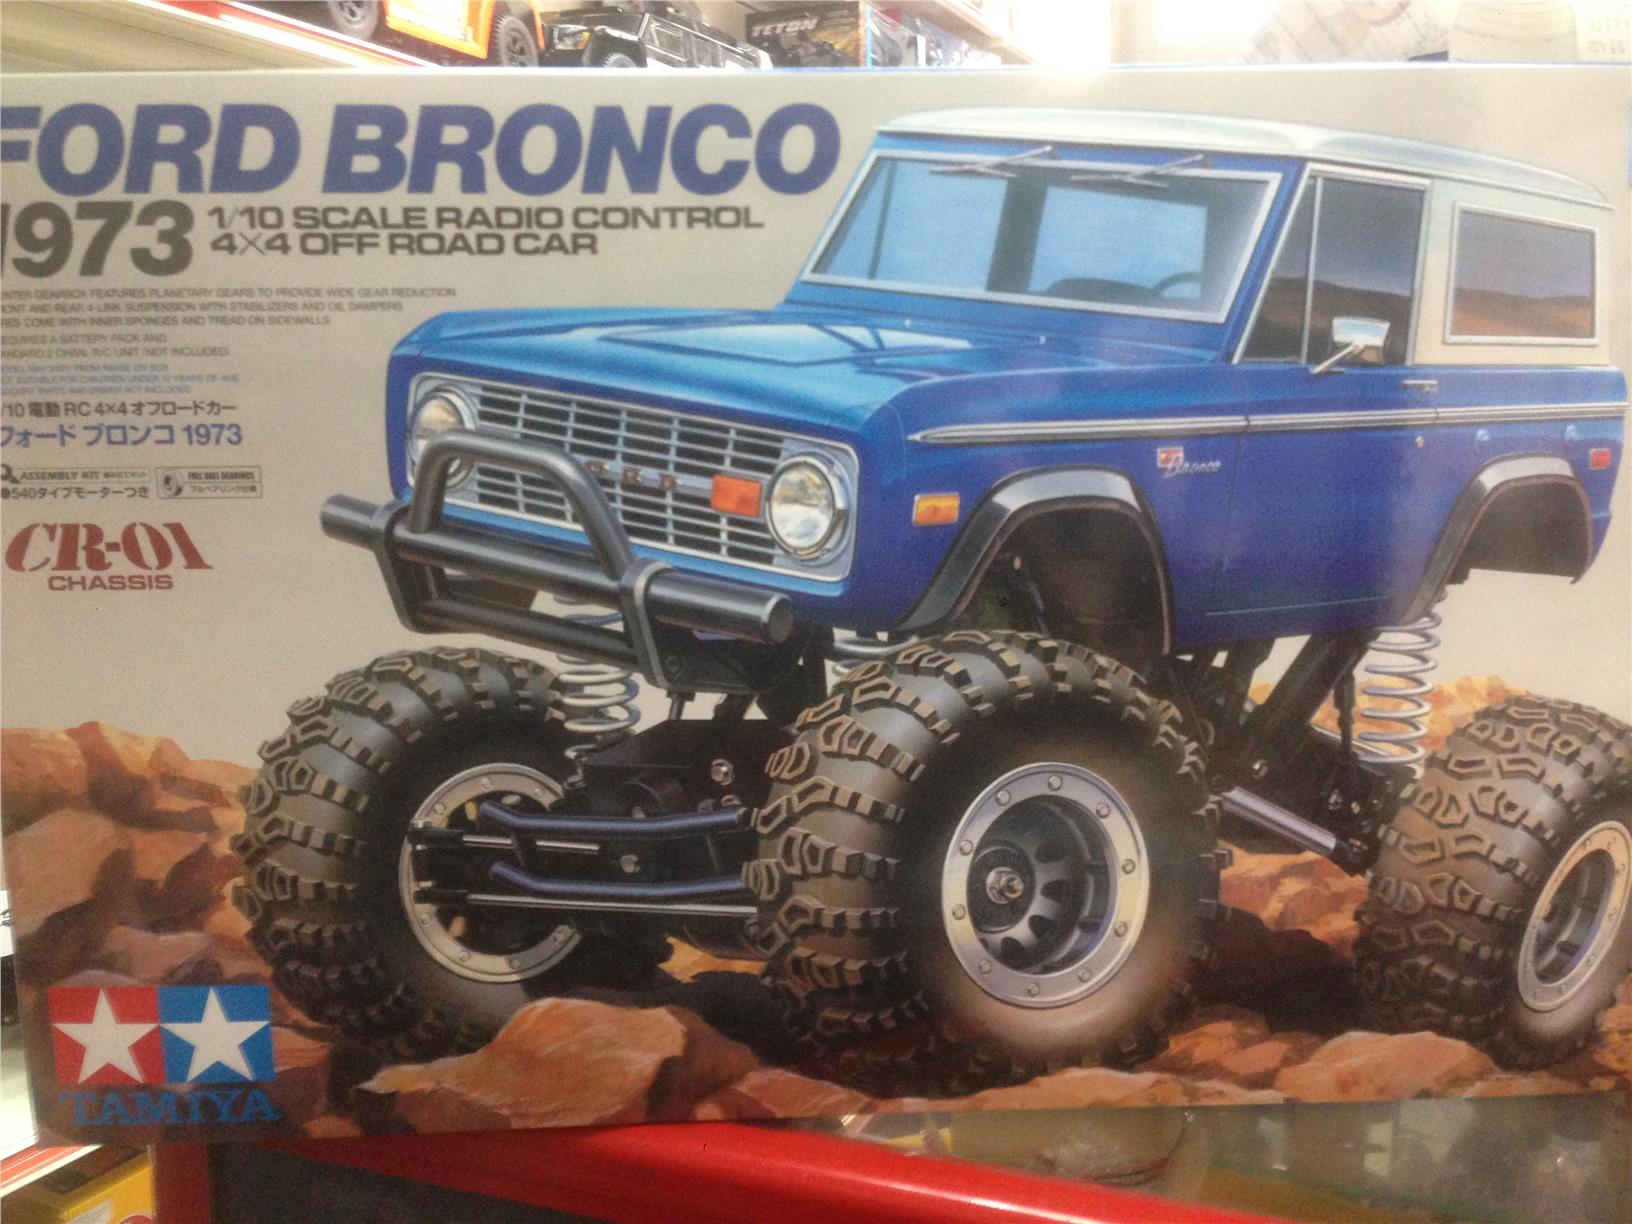 Tamiya 1/10 rc crawler ford bronco 1973 CR01 chassis